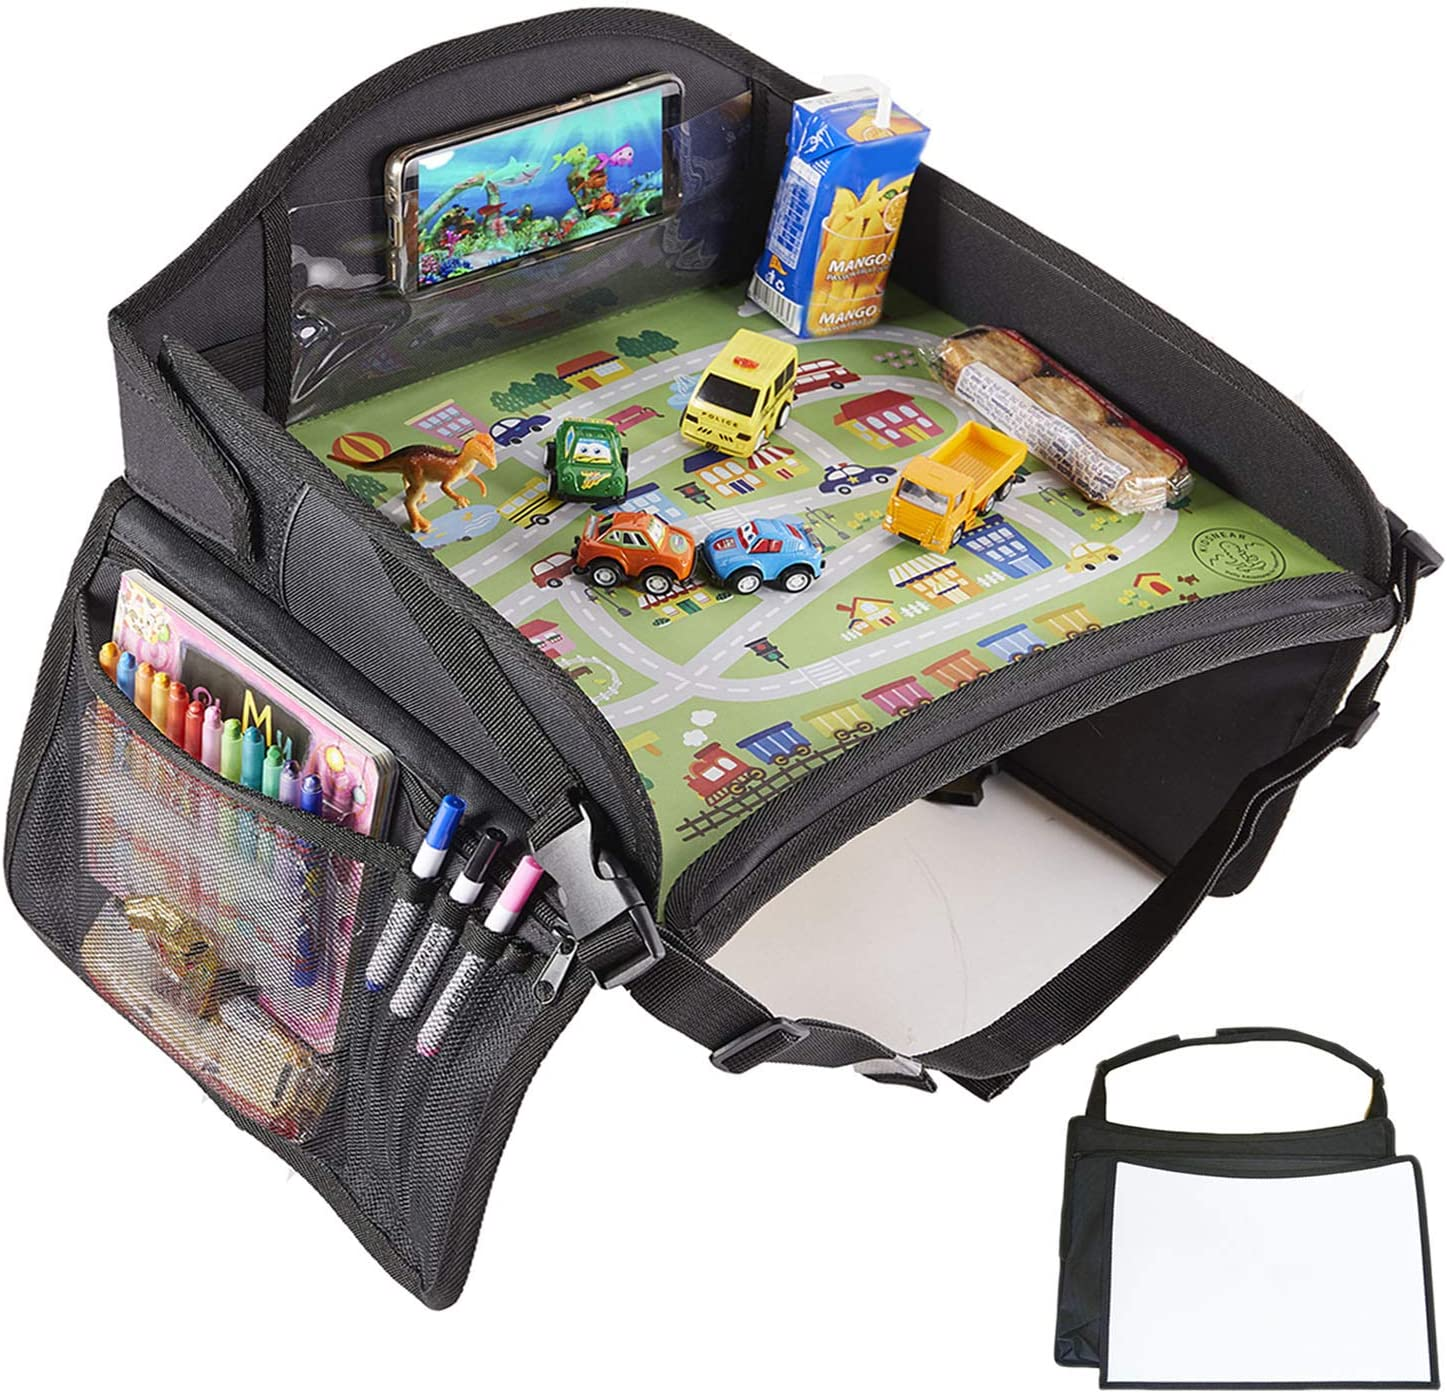 KIDSNEAR Kids Travel Tray, Car Seat Travel Tray, Toddler Travel Tray with iPad & Tablet Holder, Cup Holder, Dry Erase Board (Black)